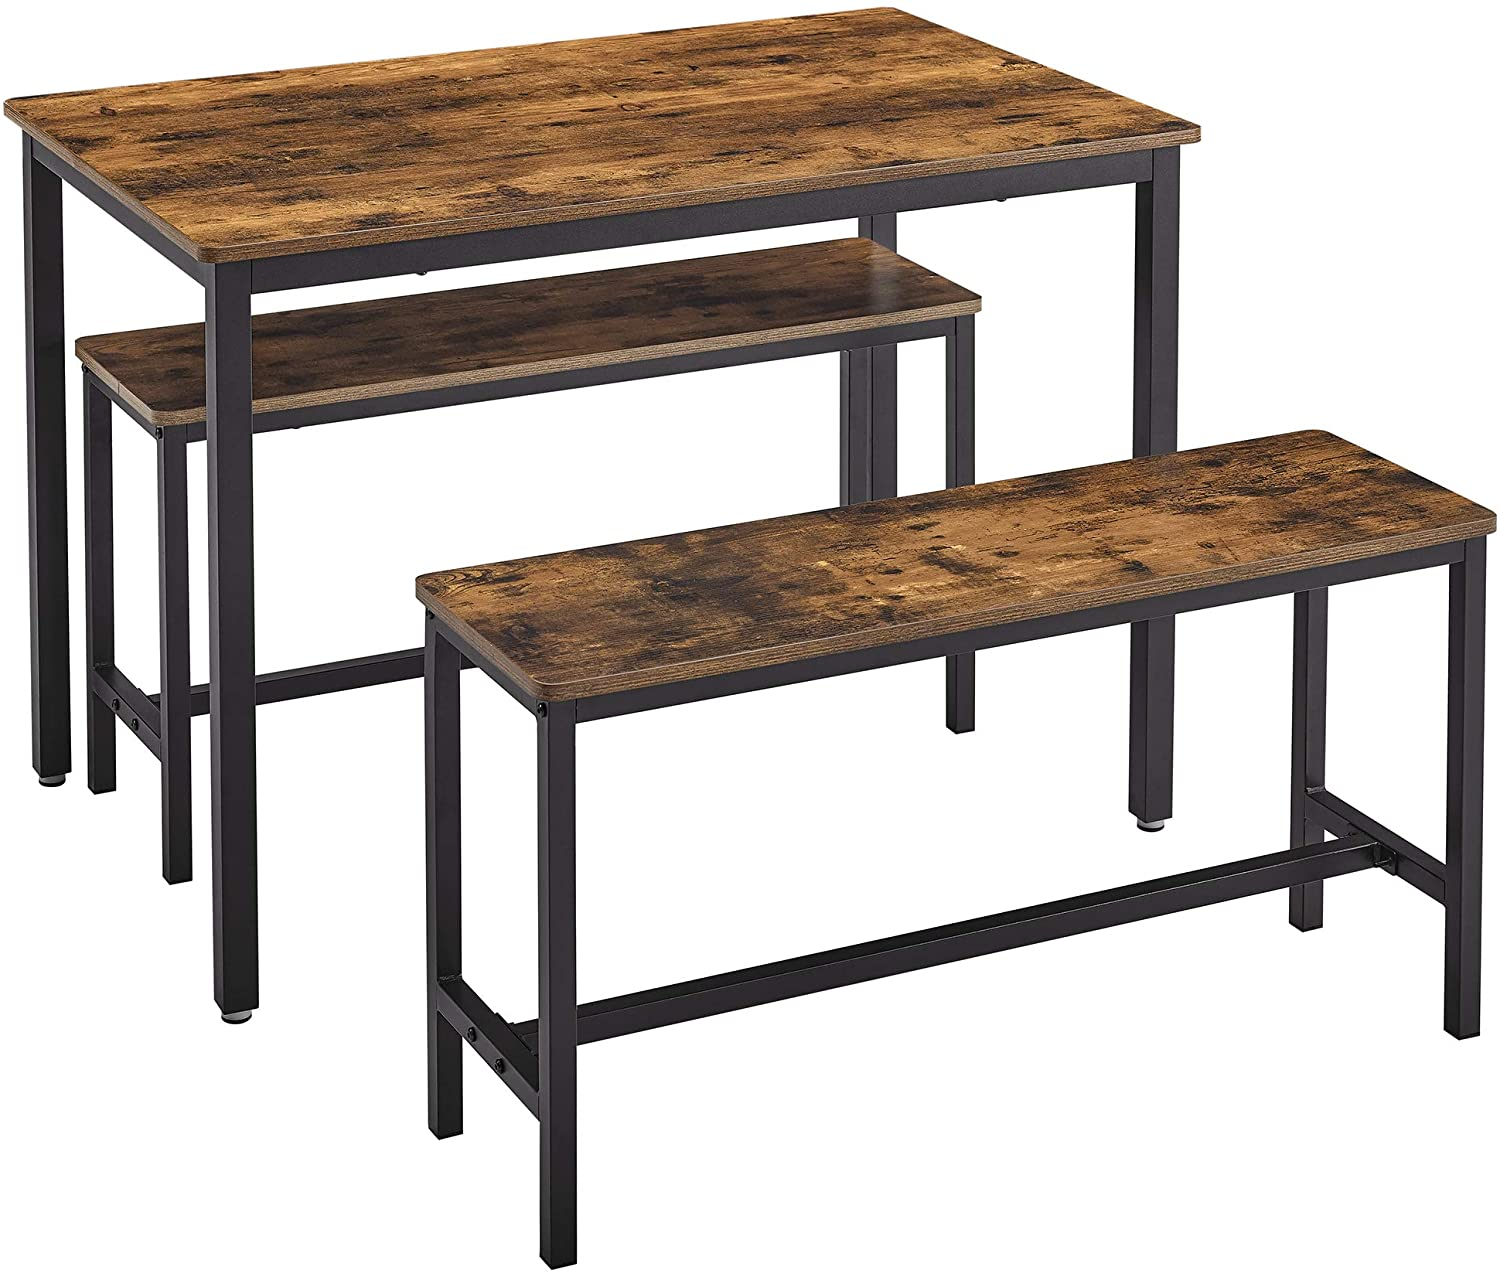 Enjoy fast, free nationwide shipping!  Family owned and operated, HawkinsWoodshop.com is your one stop shop for affordable furniture.  Shop HawkinsWoodshop.com for solid wood & metal modern, traditional, contemporary, industrial, custom, rustic, and farmhouse furniture including our Ryan Dining Table with 2 Benches.